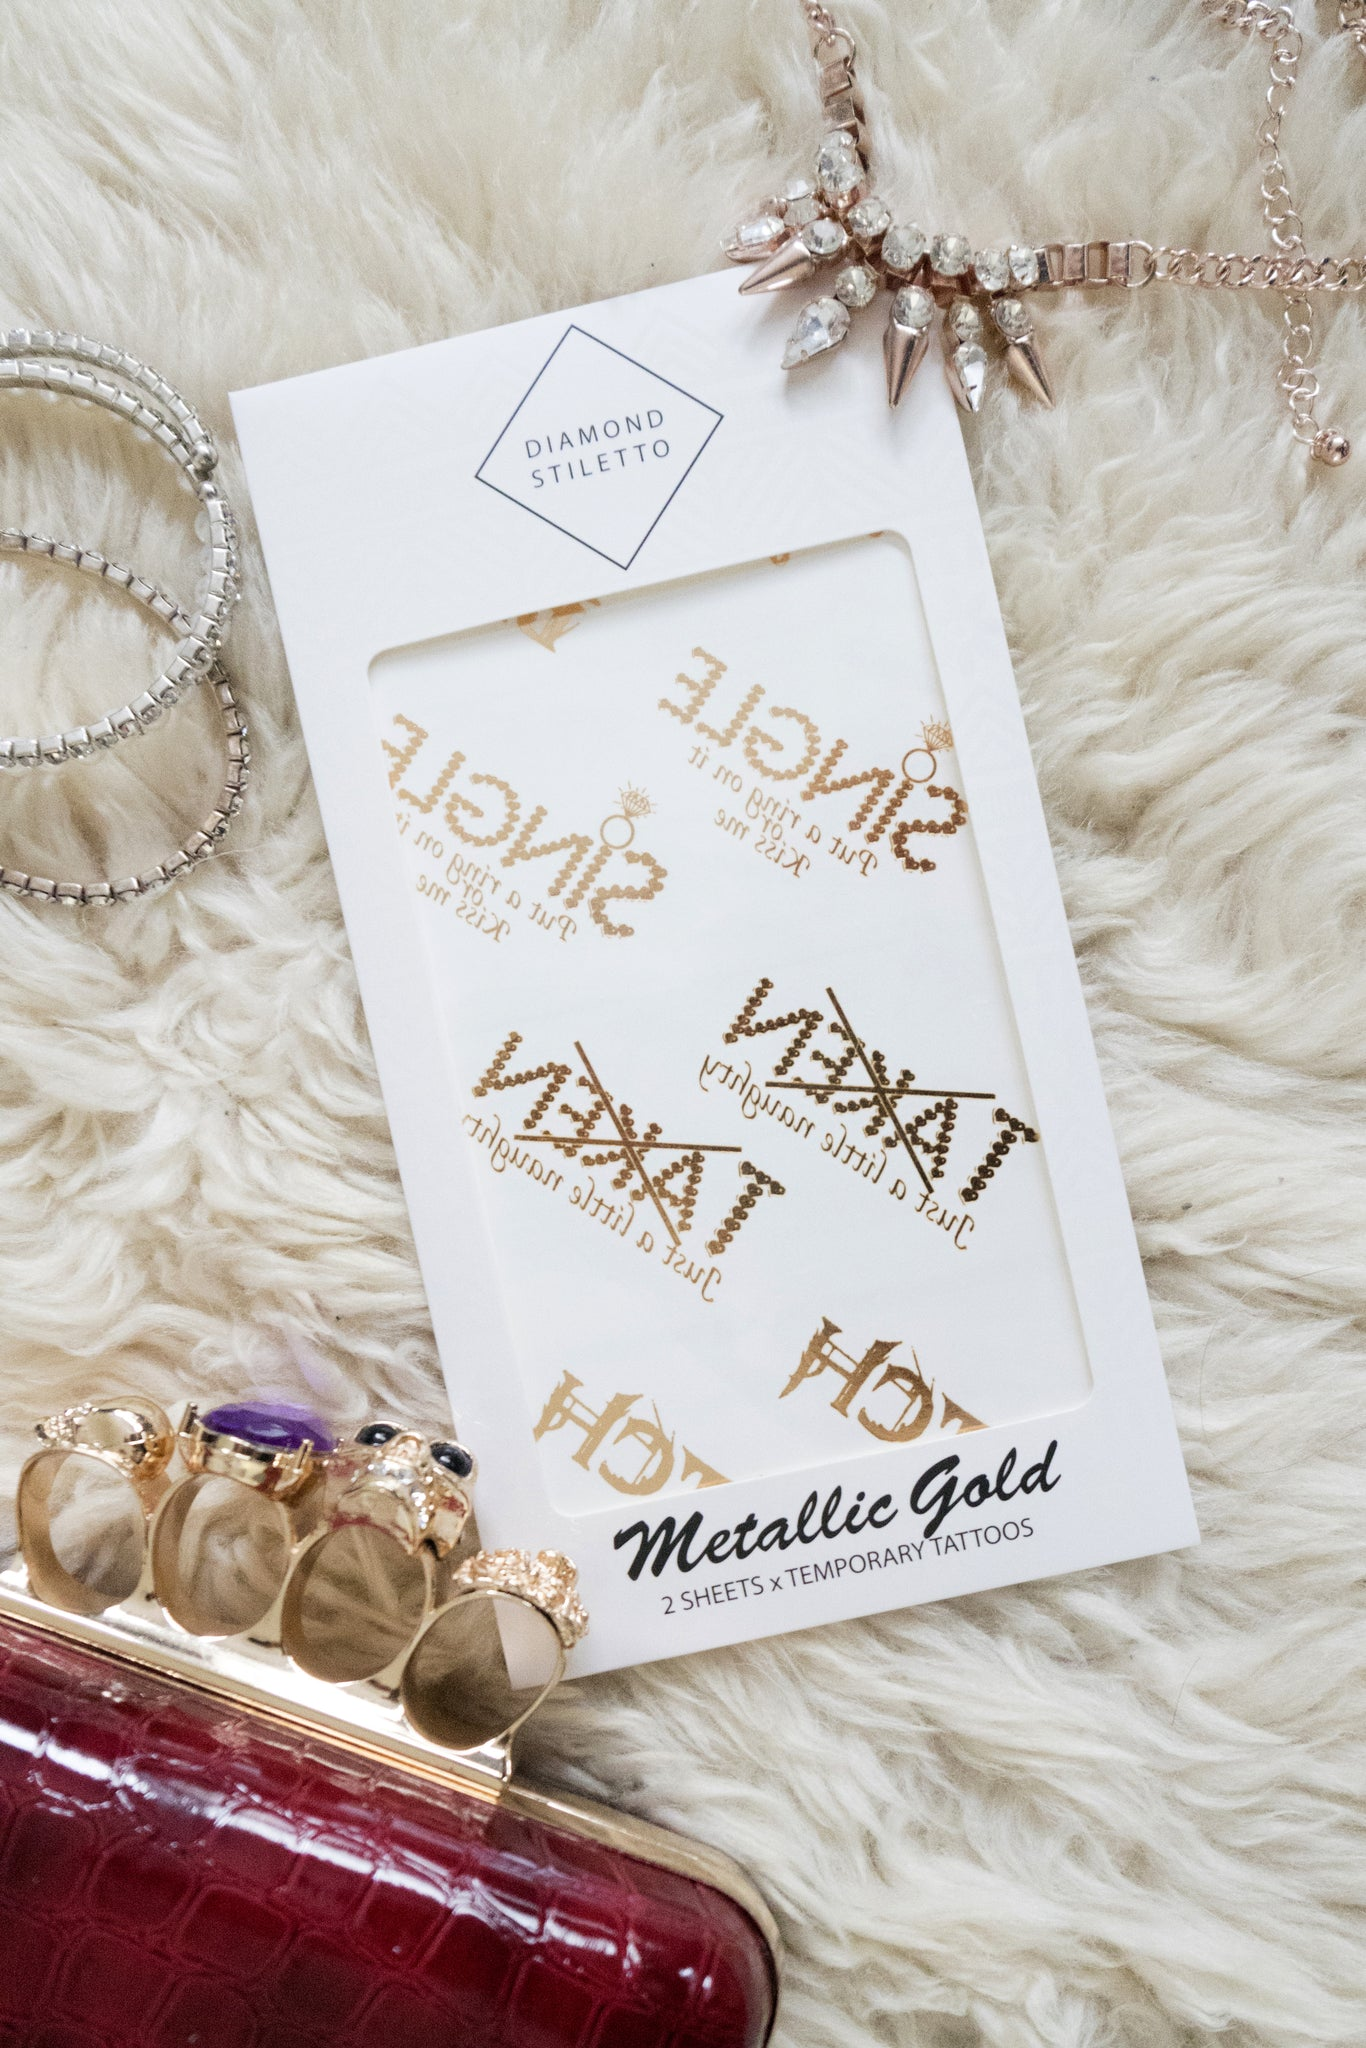 Metallic Tattoos (Naughty Bachelorette Party)